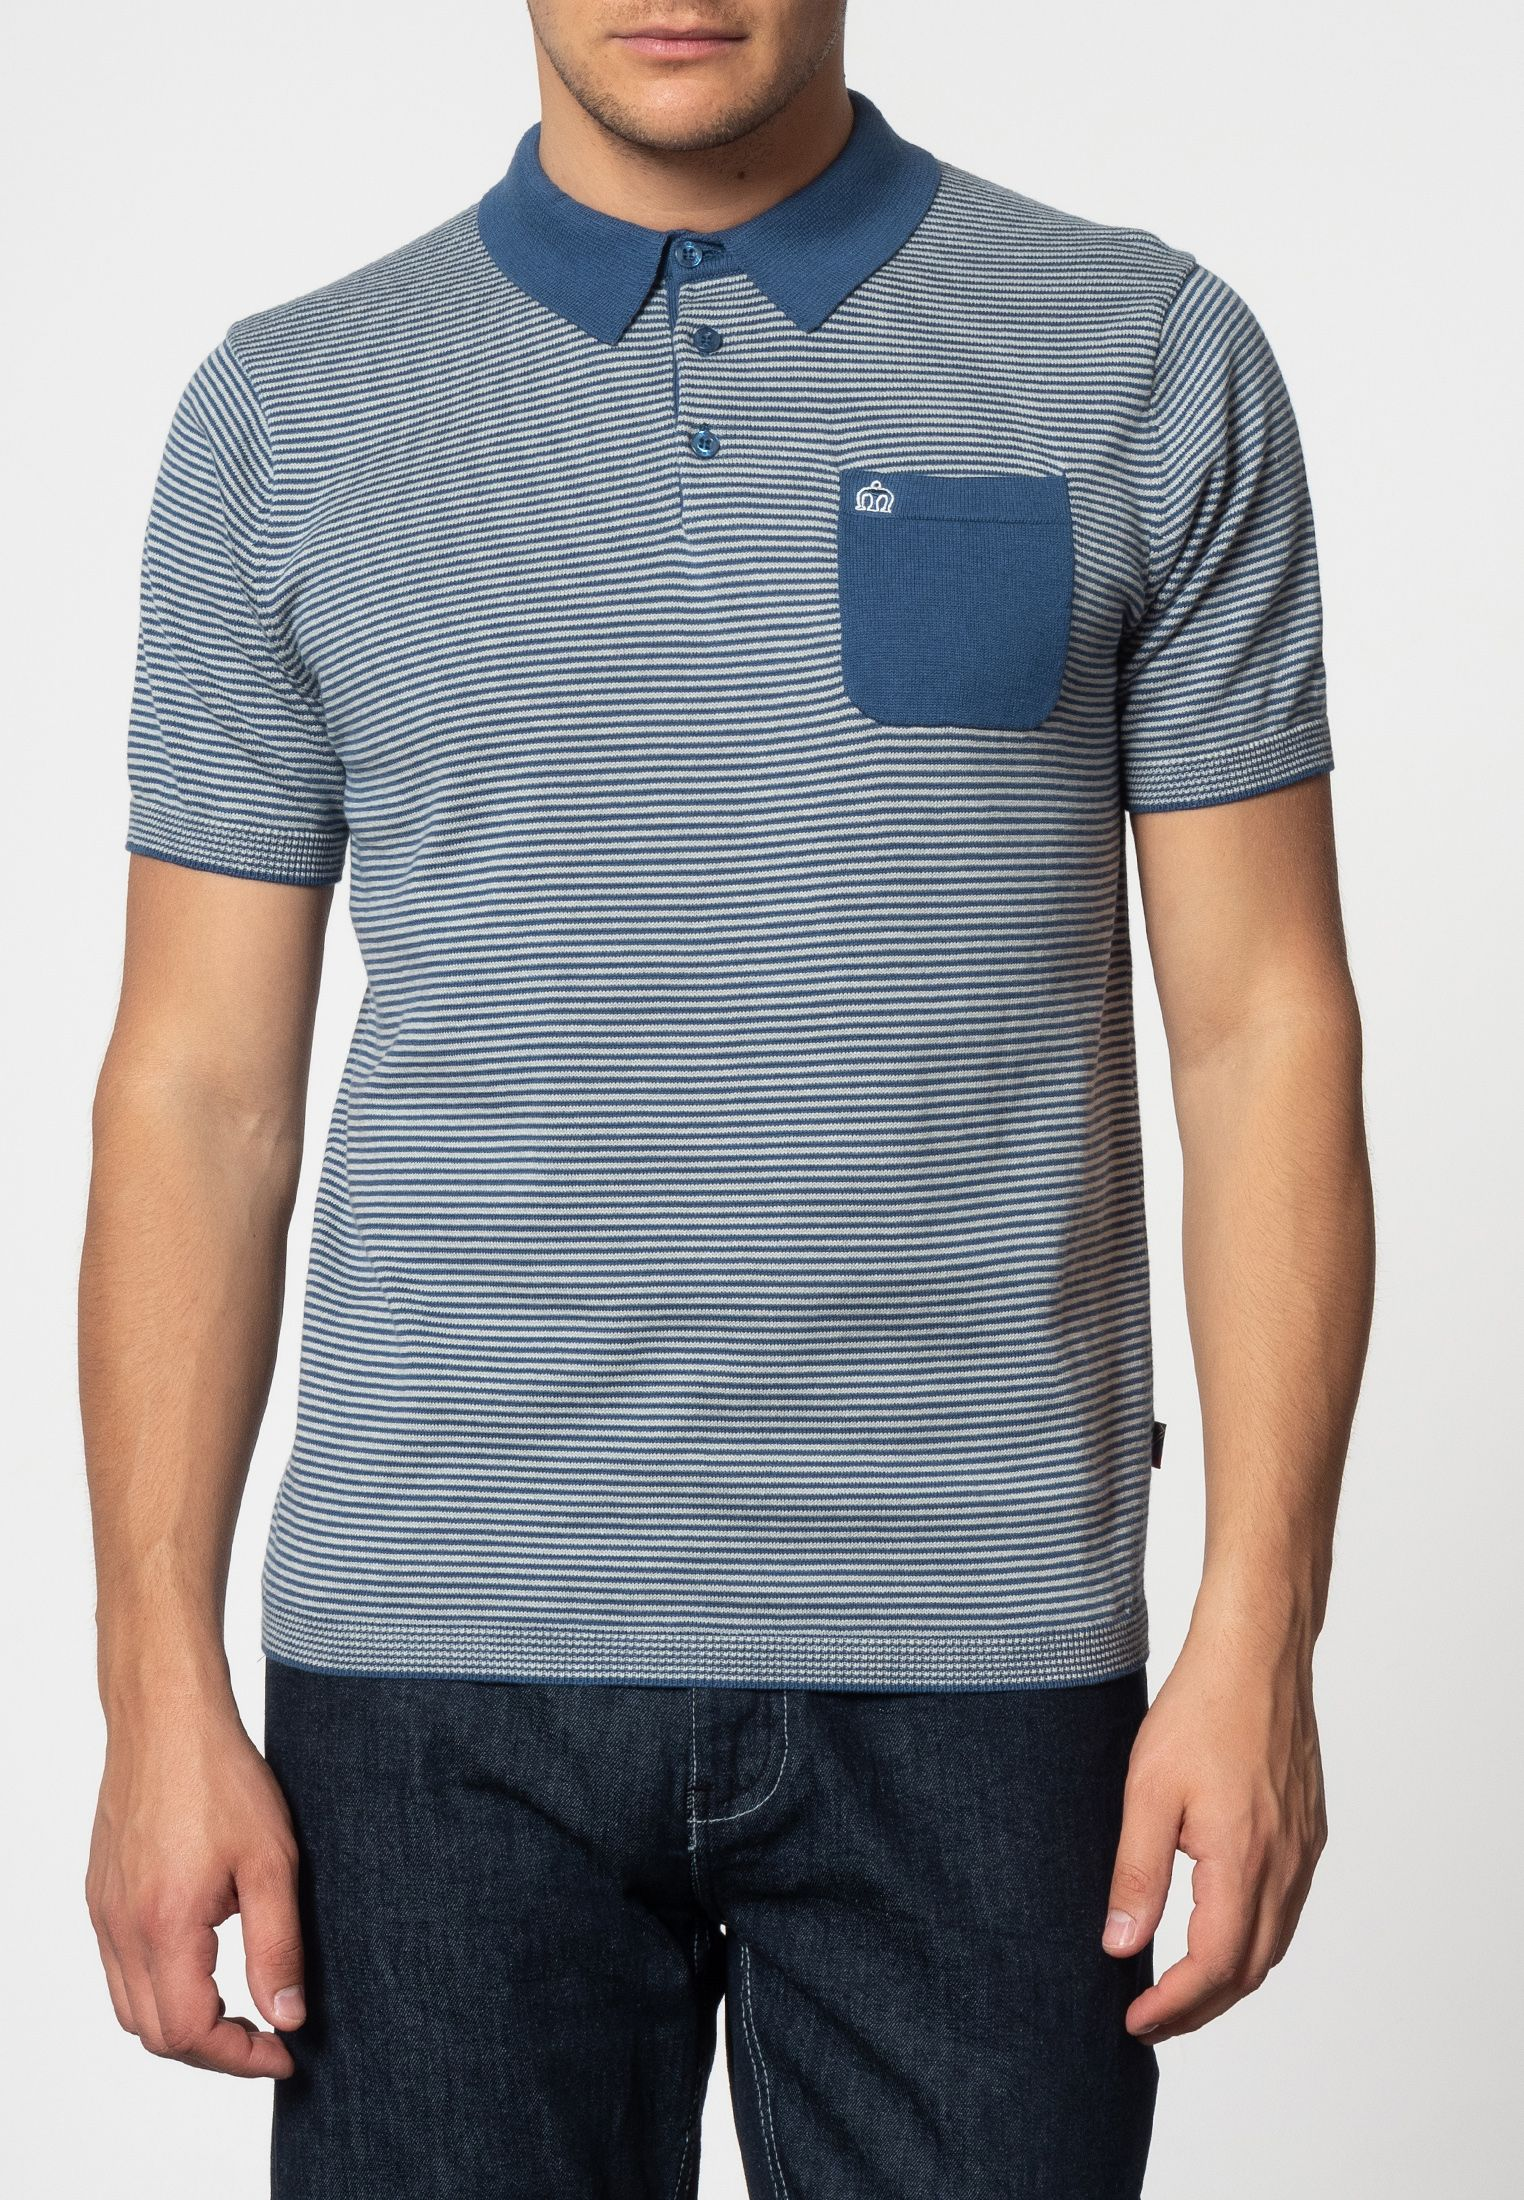 Pascal Vertical Stripes Knit Polo With Chest Pocket In Bright Blue